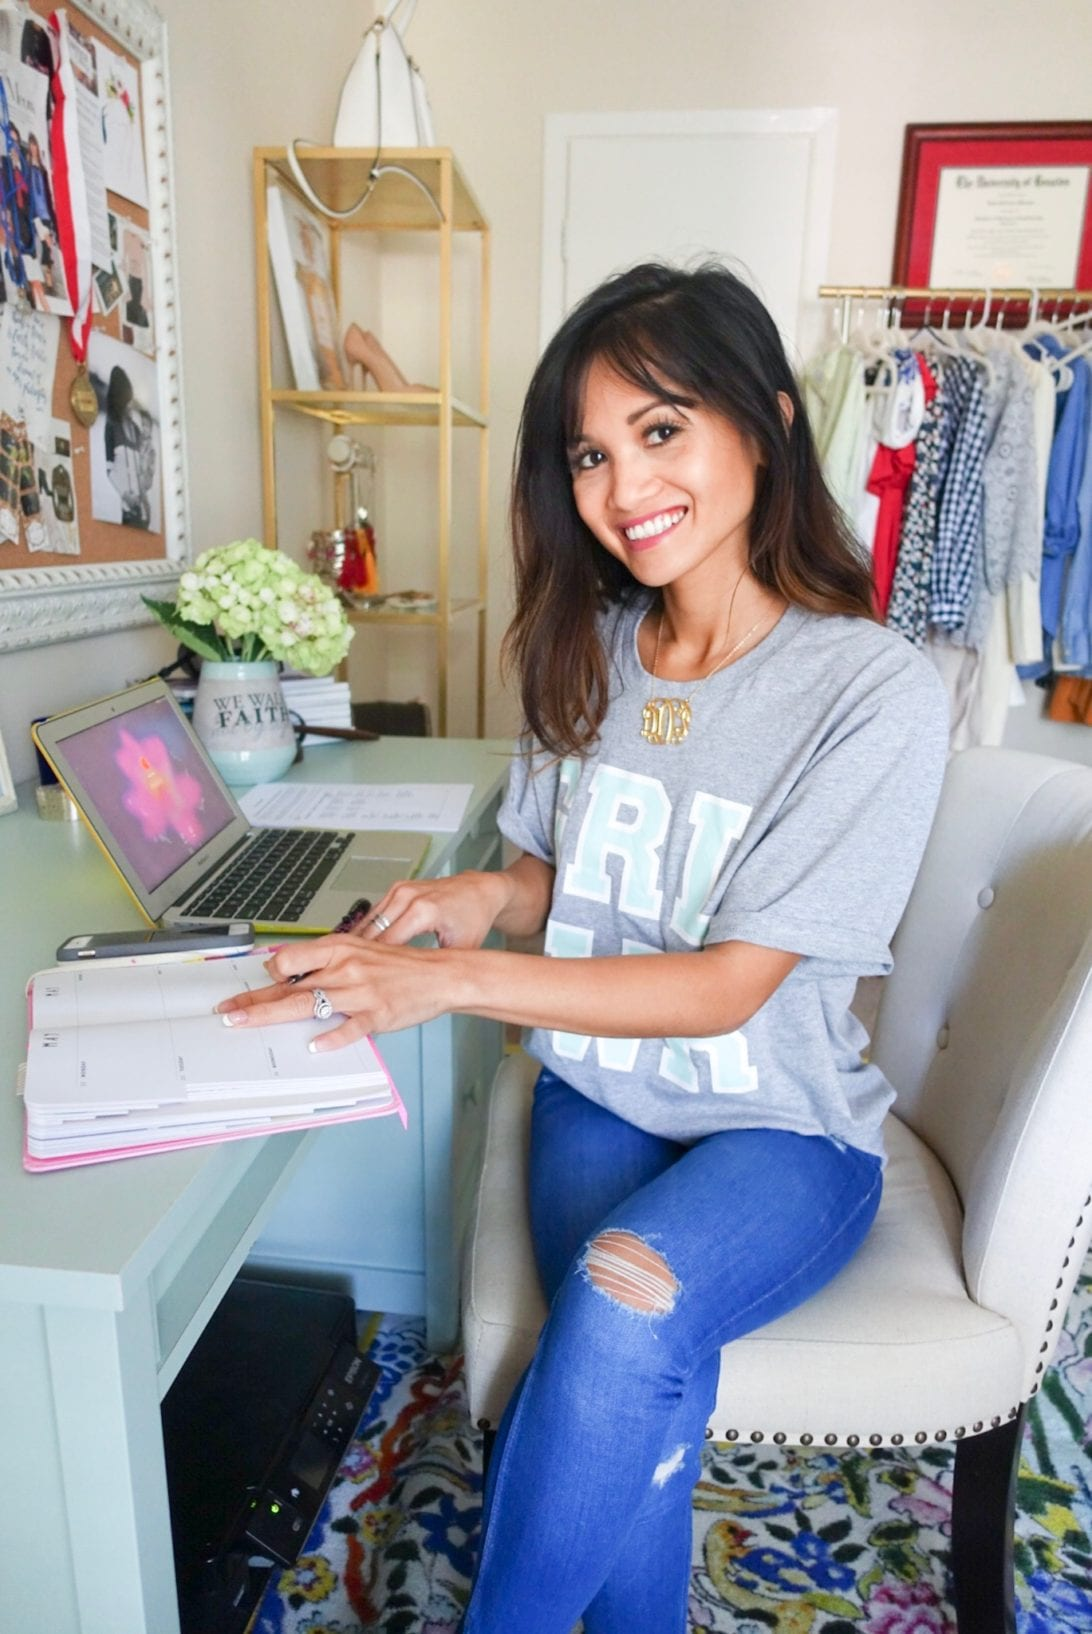 Confidence Tips For the Directions of Your Dreams by Houston blogger Dawn P. Darnell - home office, blogger office, monogrammed necklace